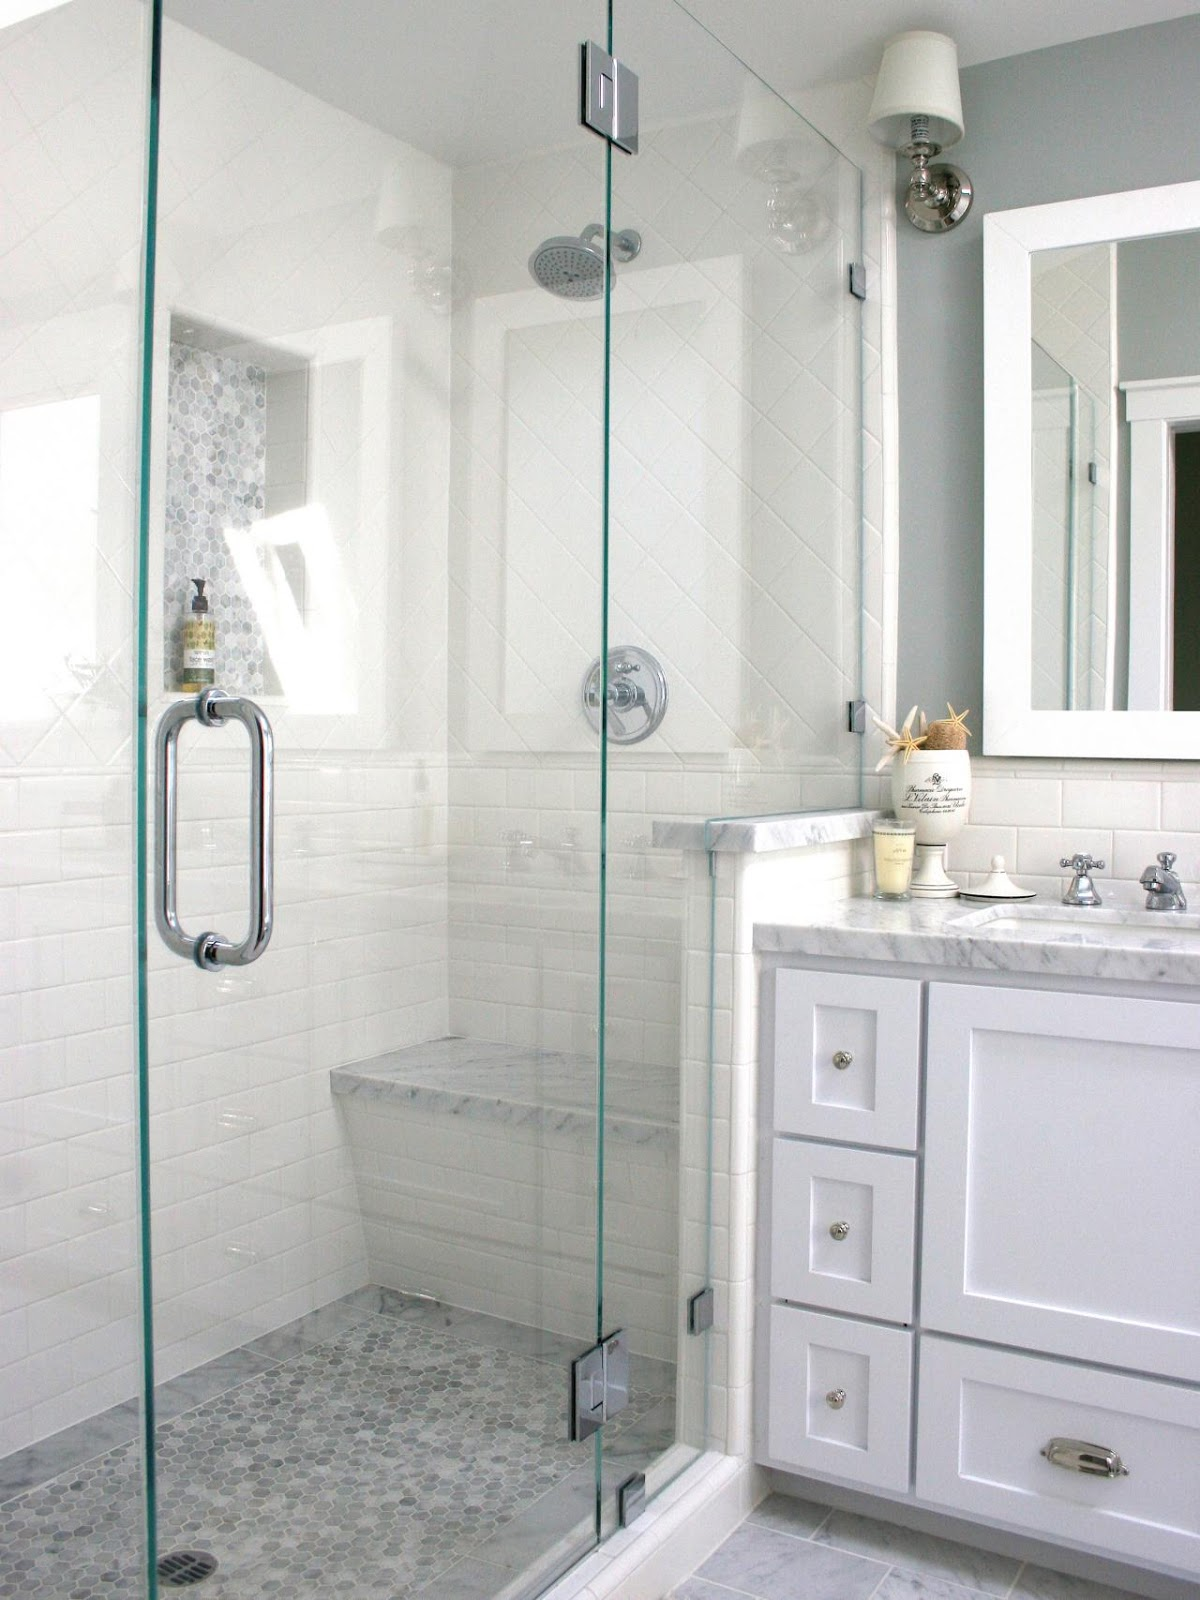 how to make a bathroom look bigger switchable privacy glass rh switchable privacy glass artlookglass com how to make a bathroom look bigger with mirrors how to make a small bathroom window look bigger